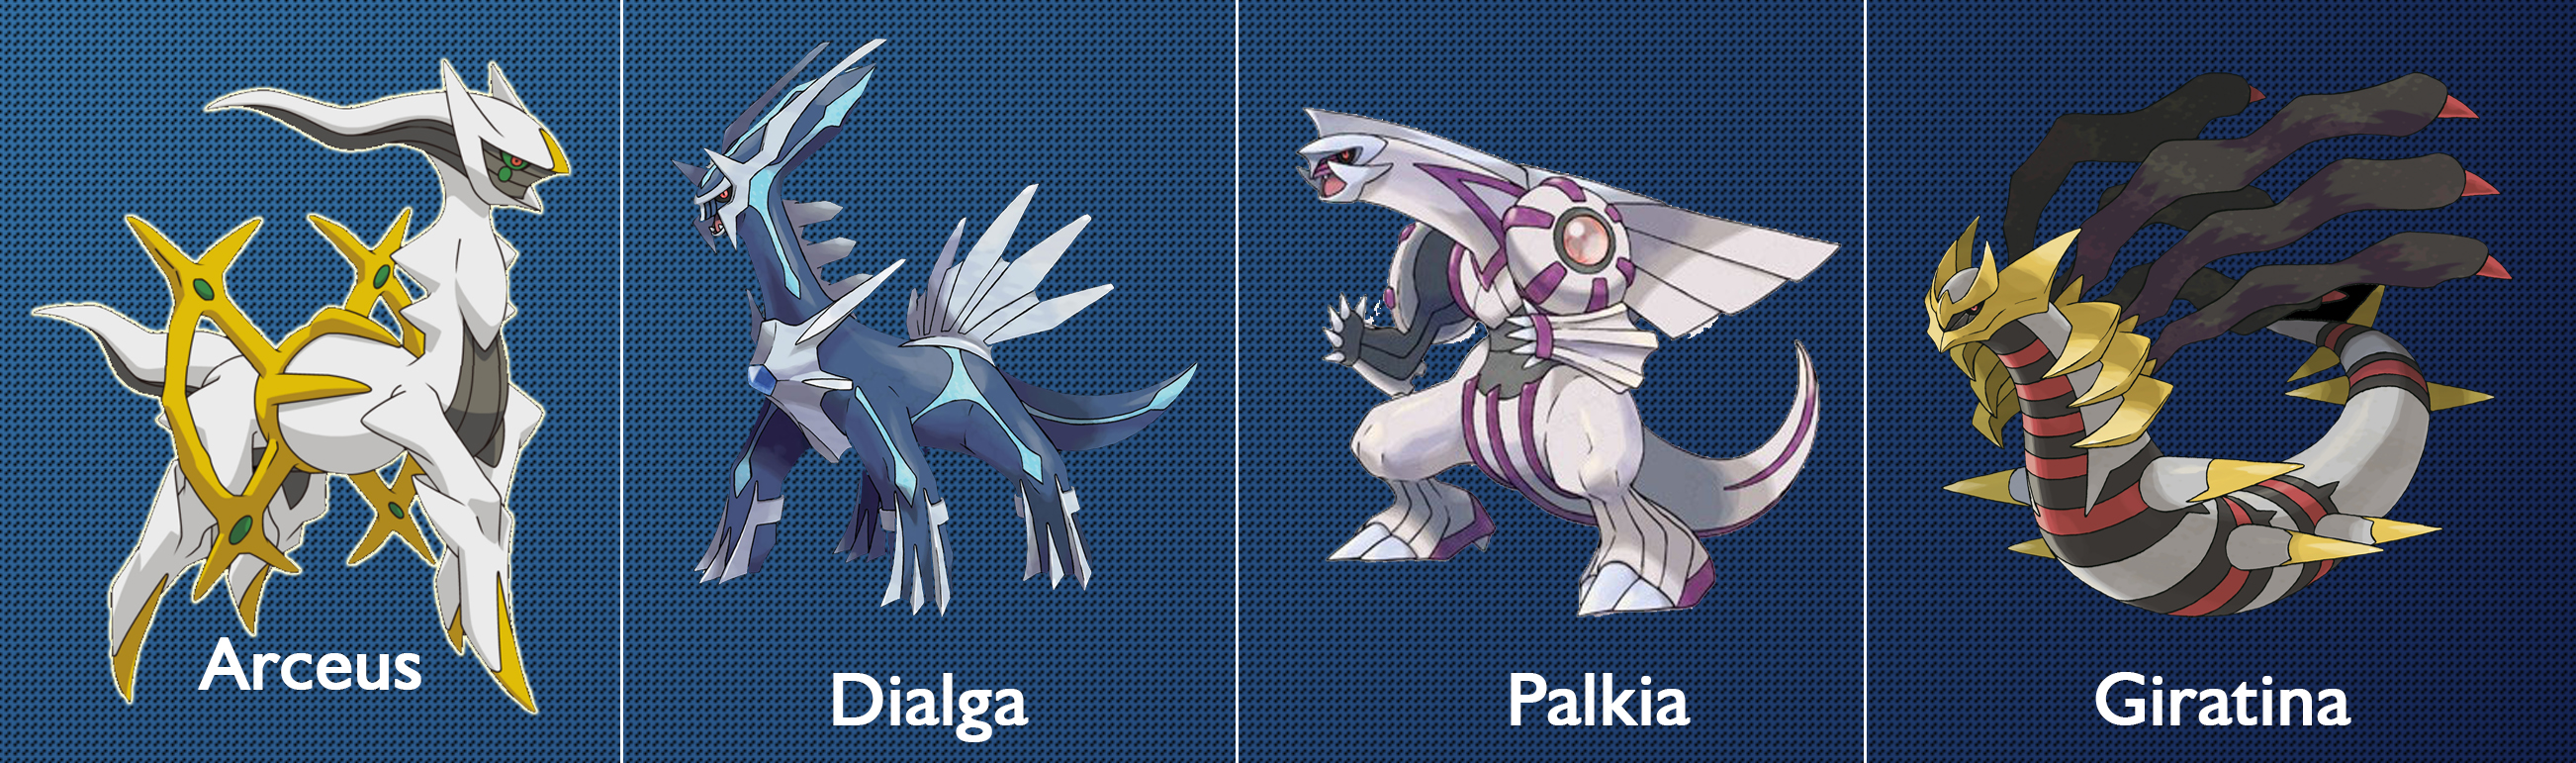 dialga palkia giratina arceus - photo #10